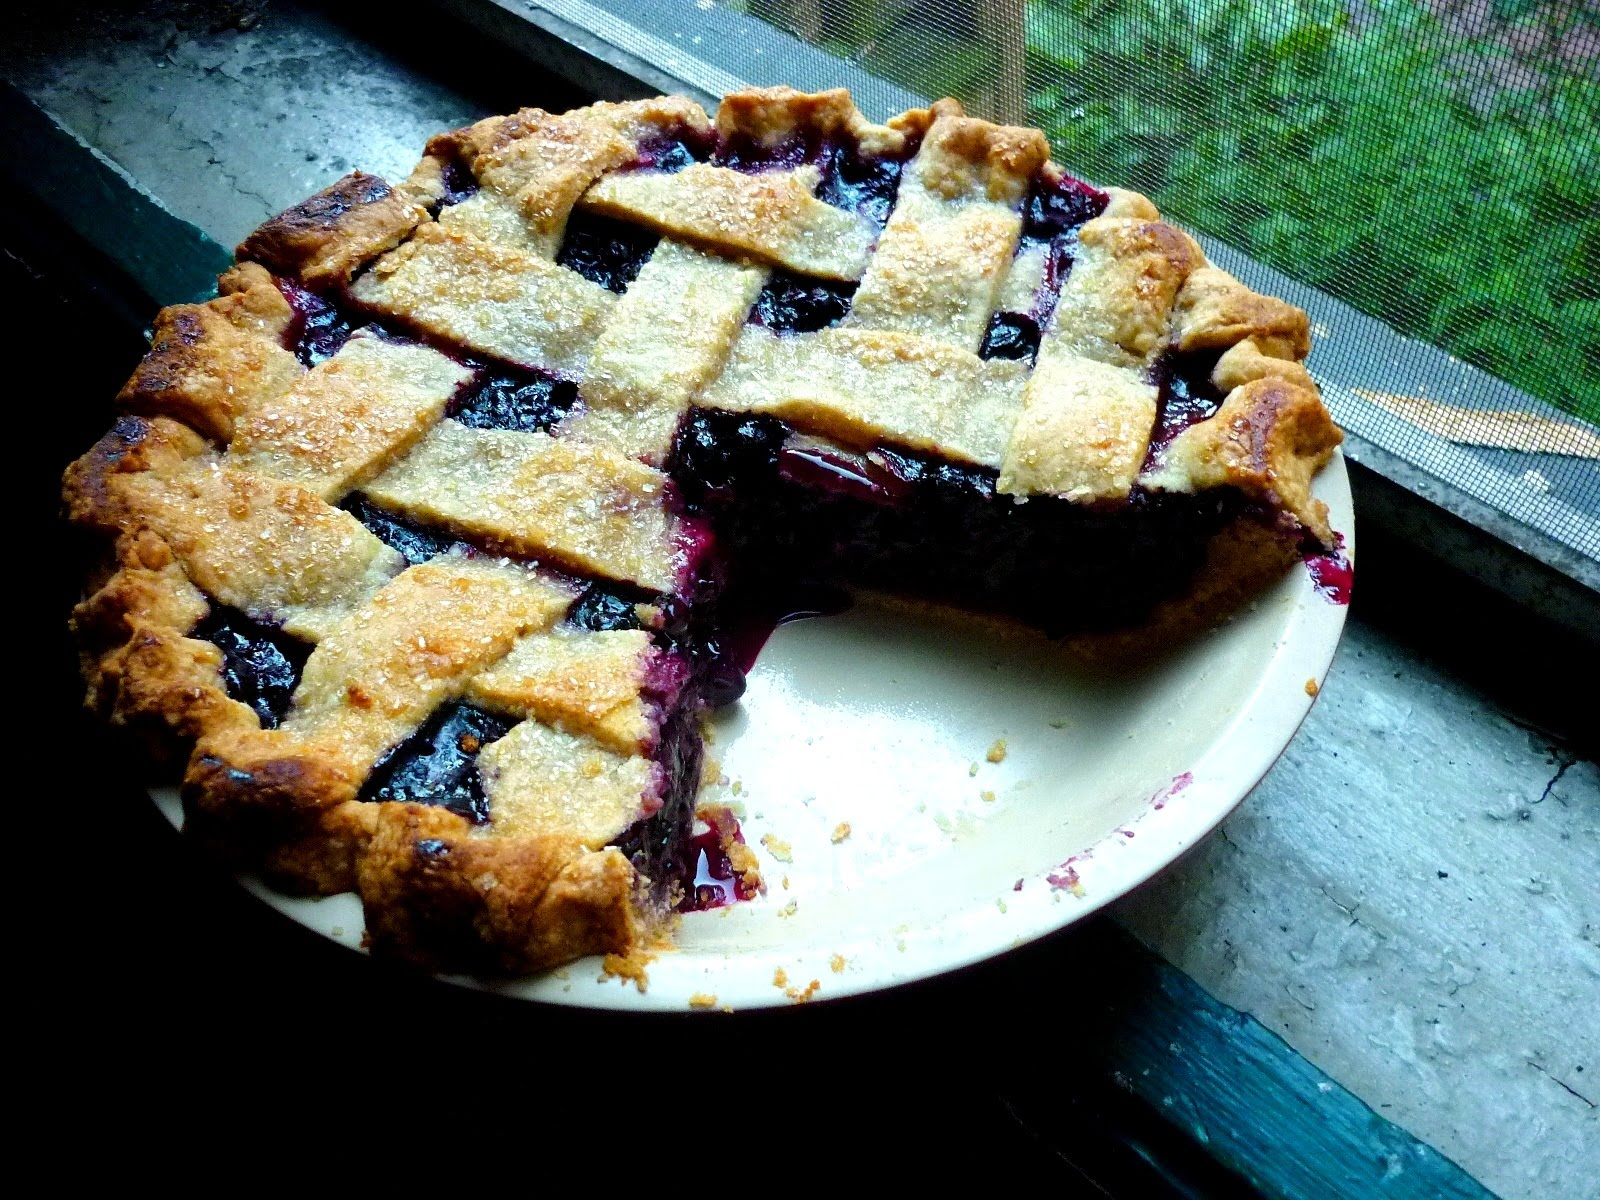 pie wyman s wyman s wild blueberry pie wyman s wild blueberry pie ...